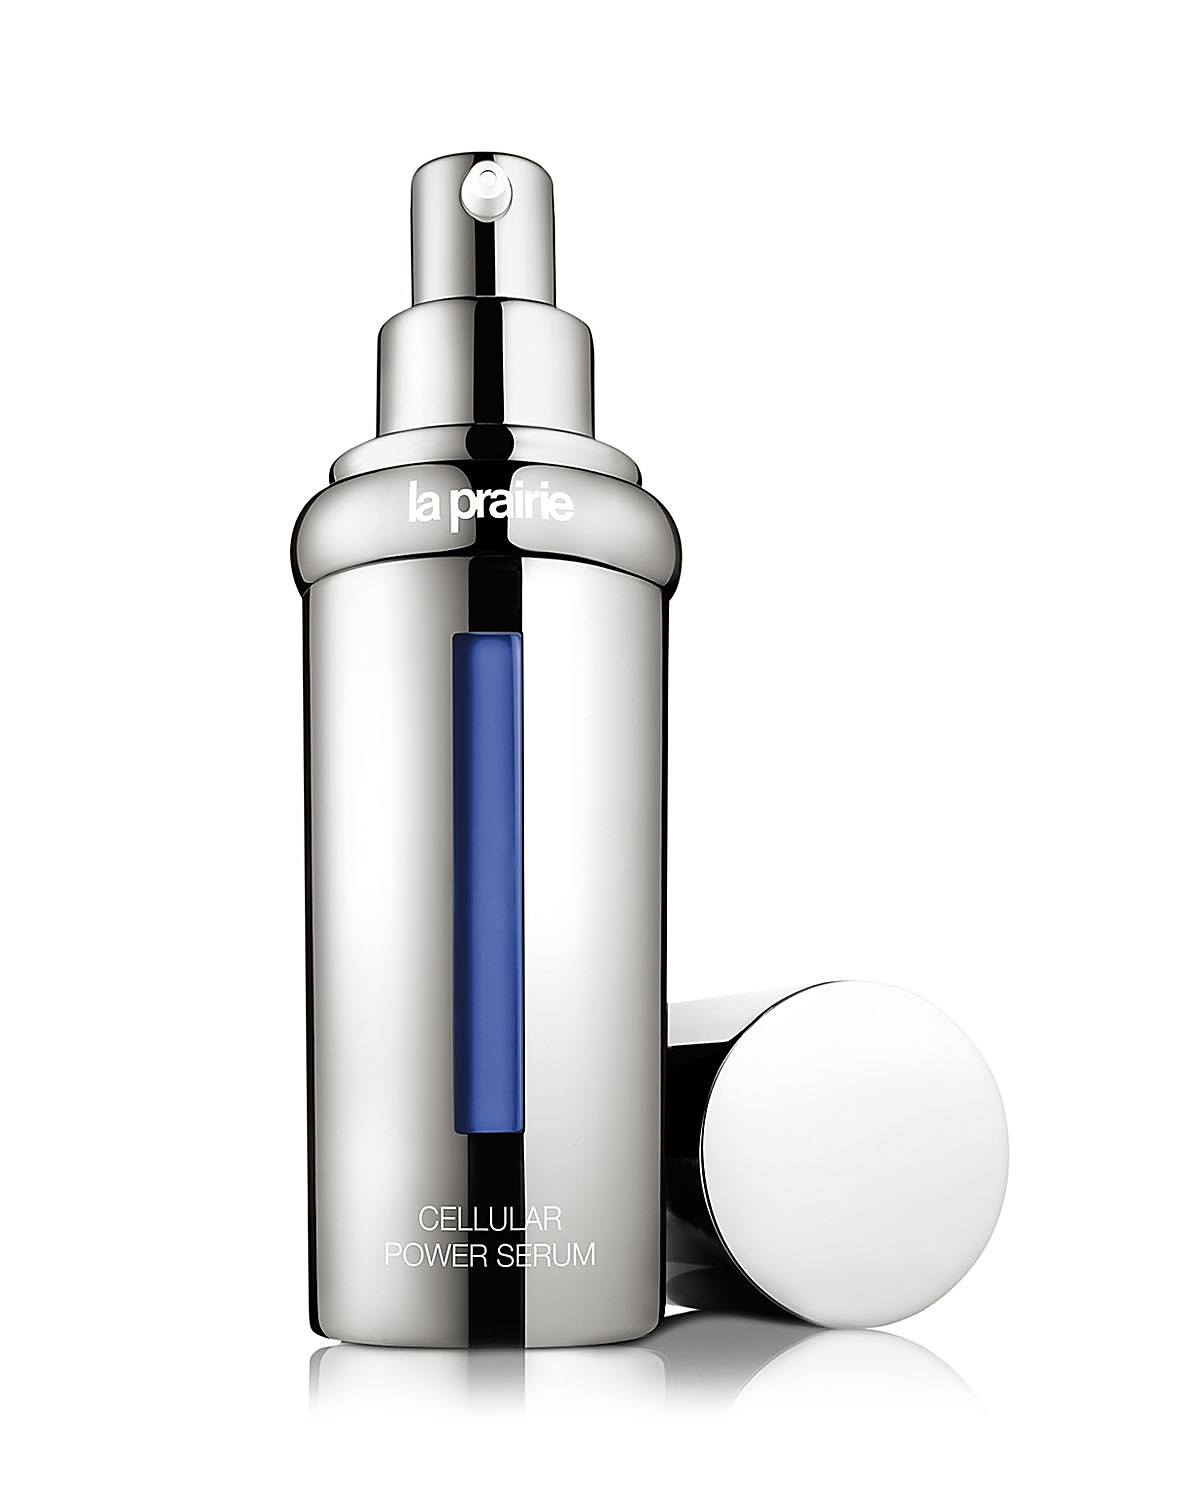 la prairie to launch cellular power serum in april beauty scene. Black Bedroom Furniture Sets. Home Design Ideas